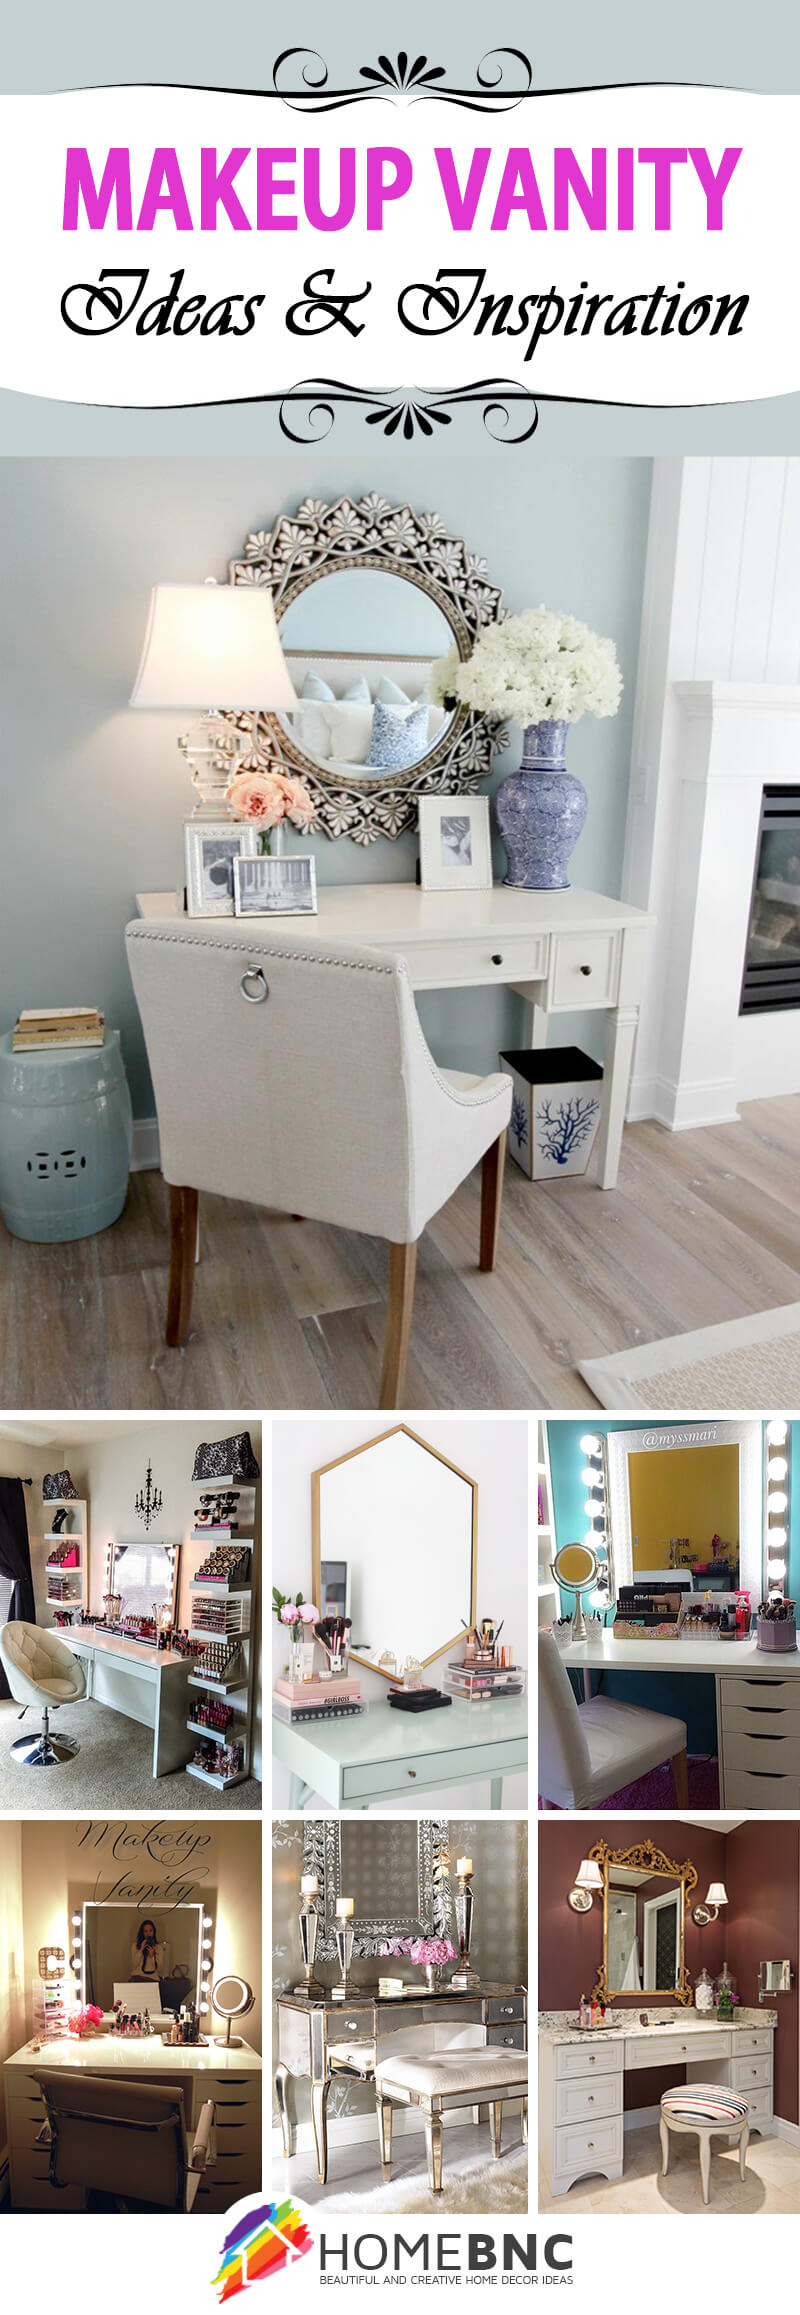 Designs for Makeup Vanity